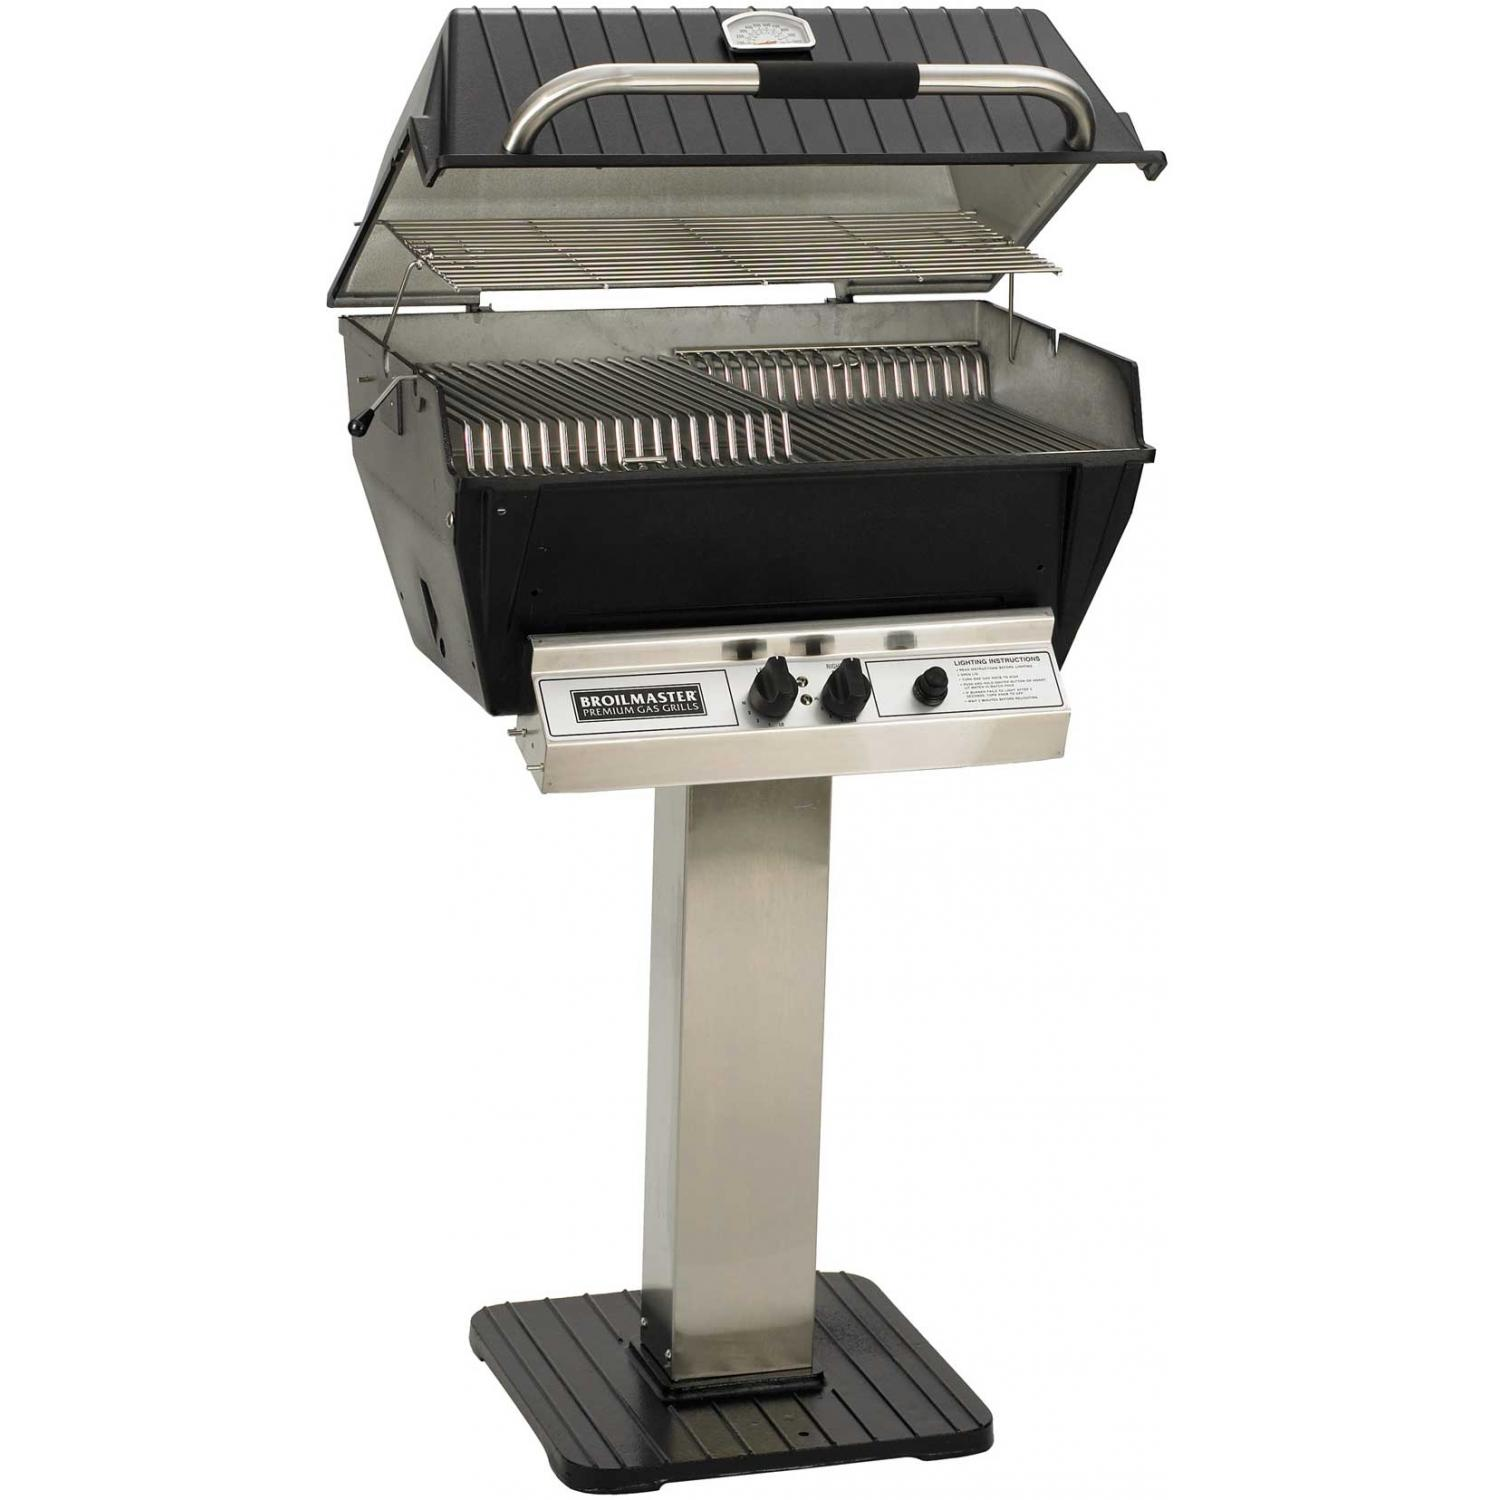 Broilmaster P3 Xfn Premium Natural Gas Grill On Stainless Steel Patio Post P3 Xfn Ss26 P Propane Gas Grill Grilling Infrared Grills